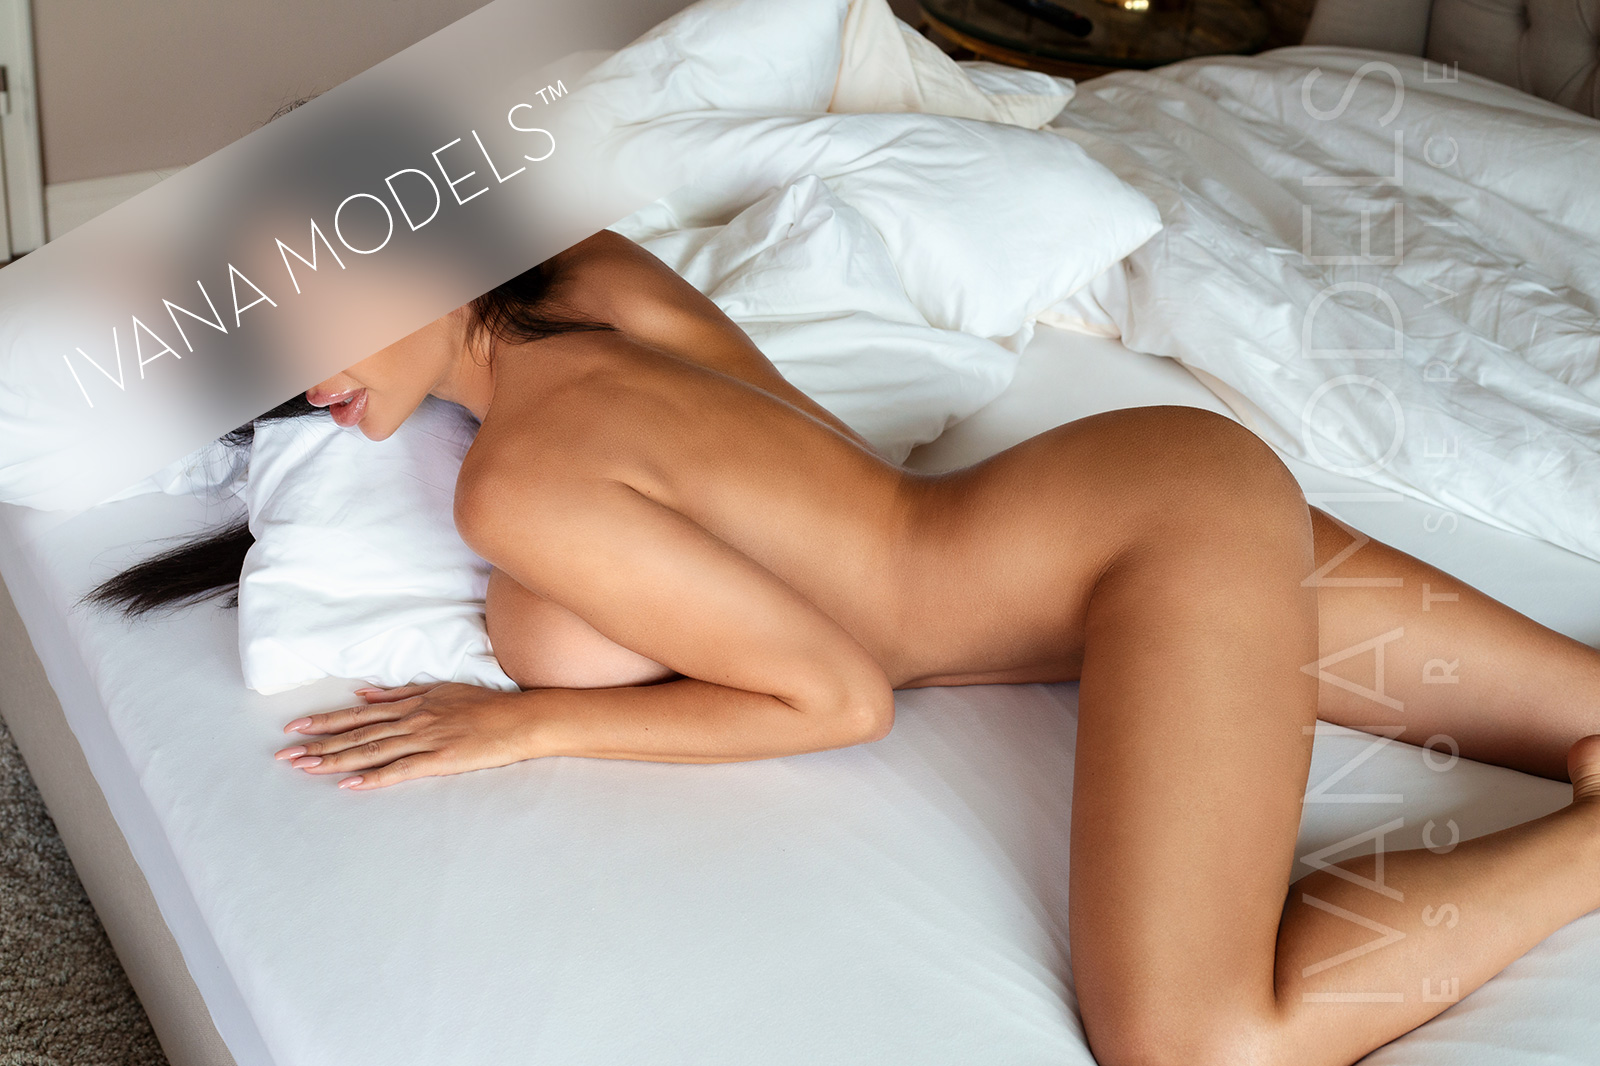 Book your unforgettable escort girl Sofia now